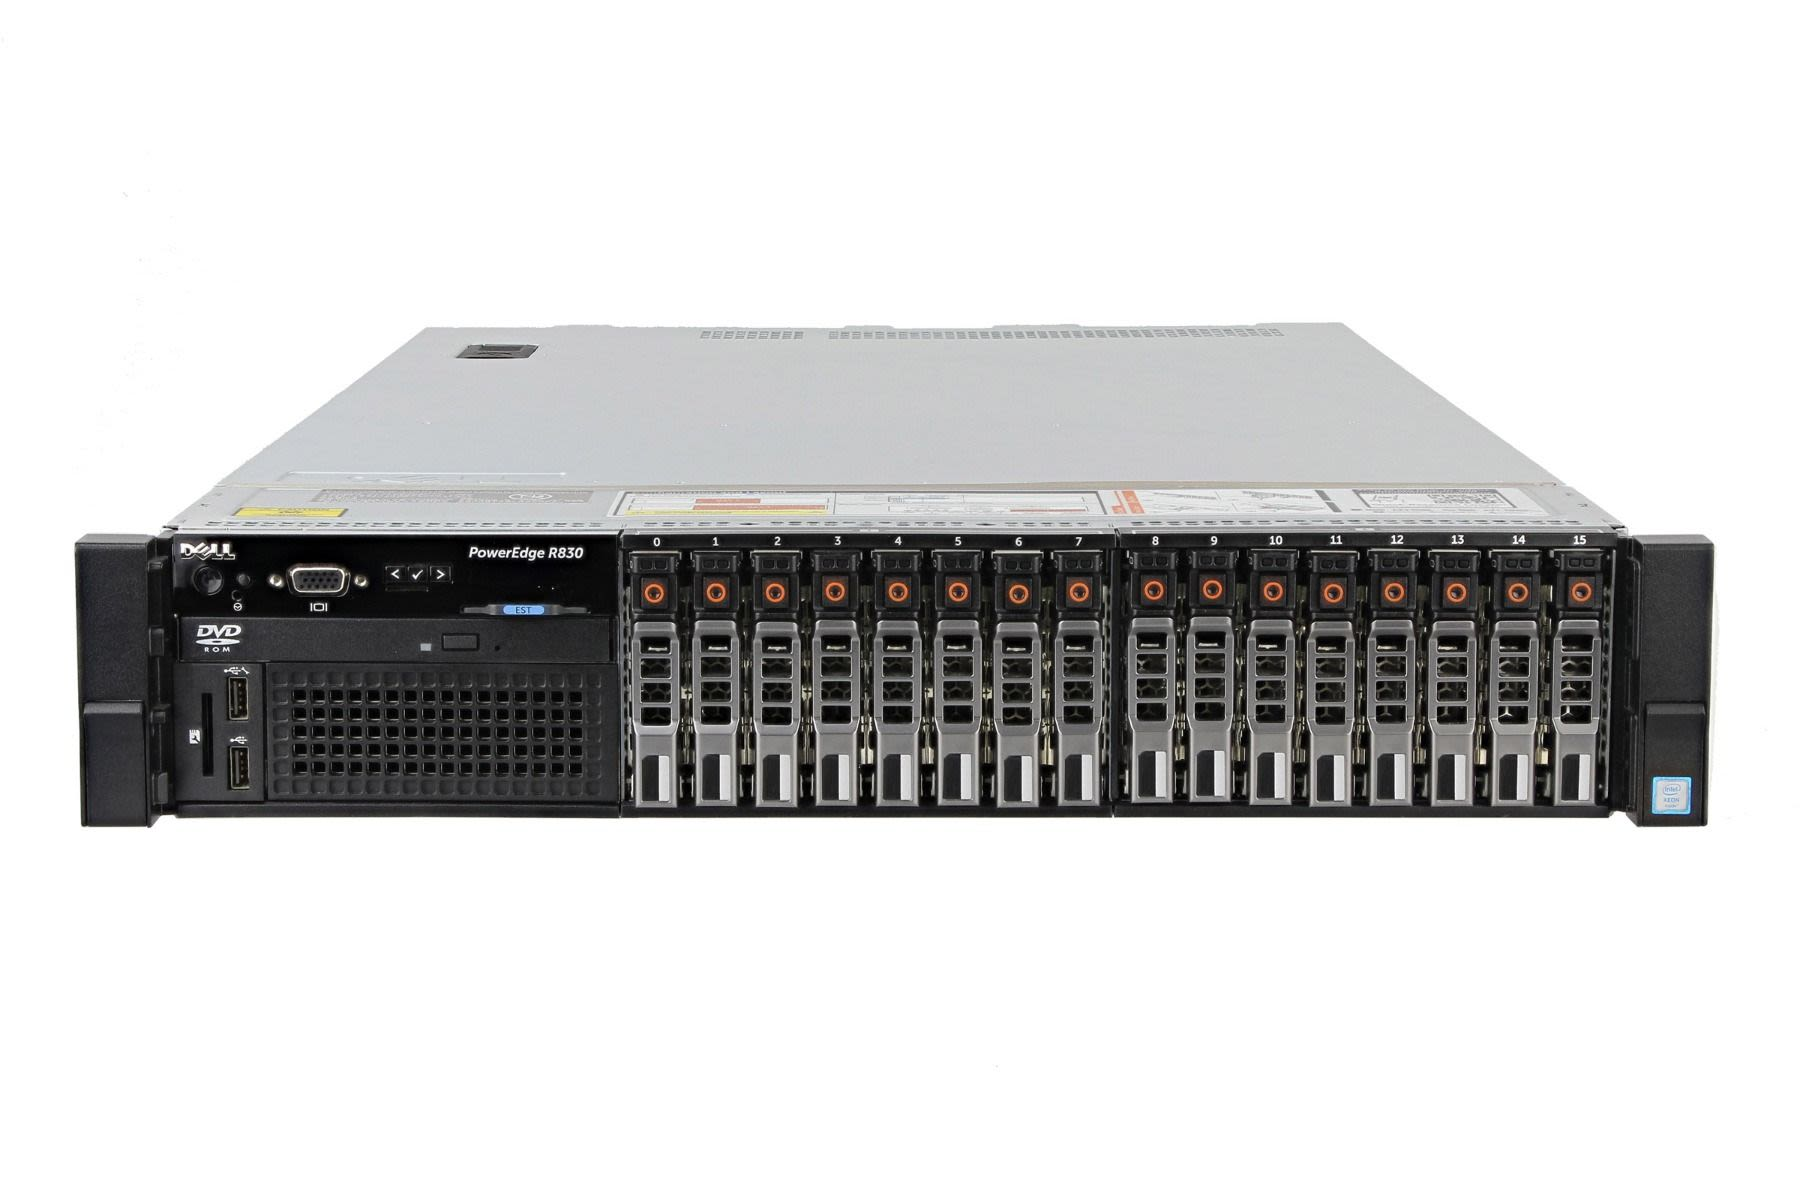 Configure your own Dell PowerEdge R830